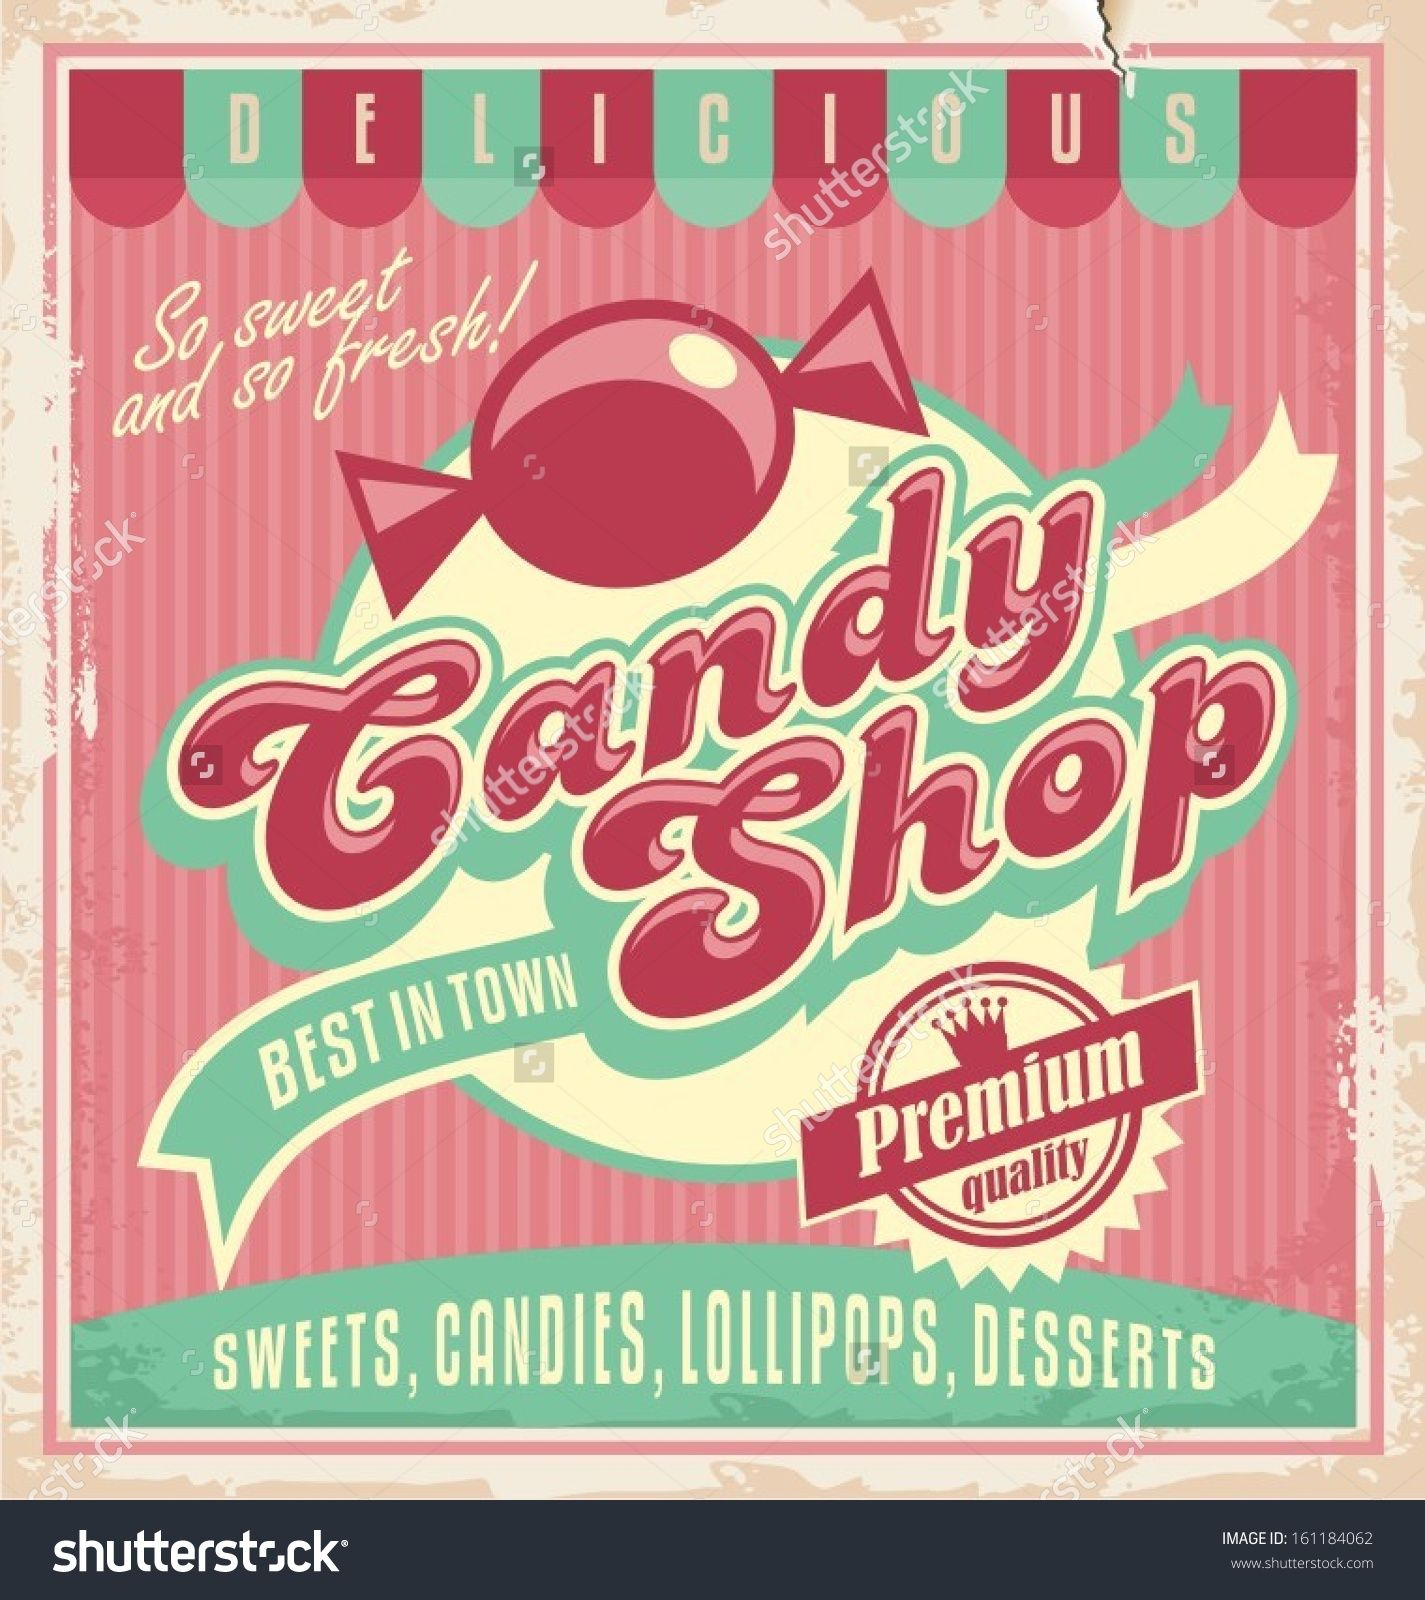 Vintage poster template for candy shop. Poster template